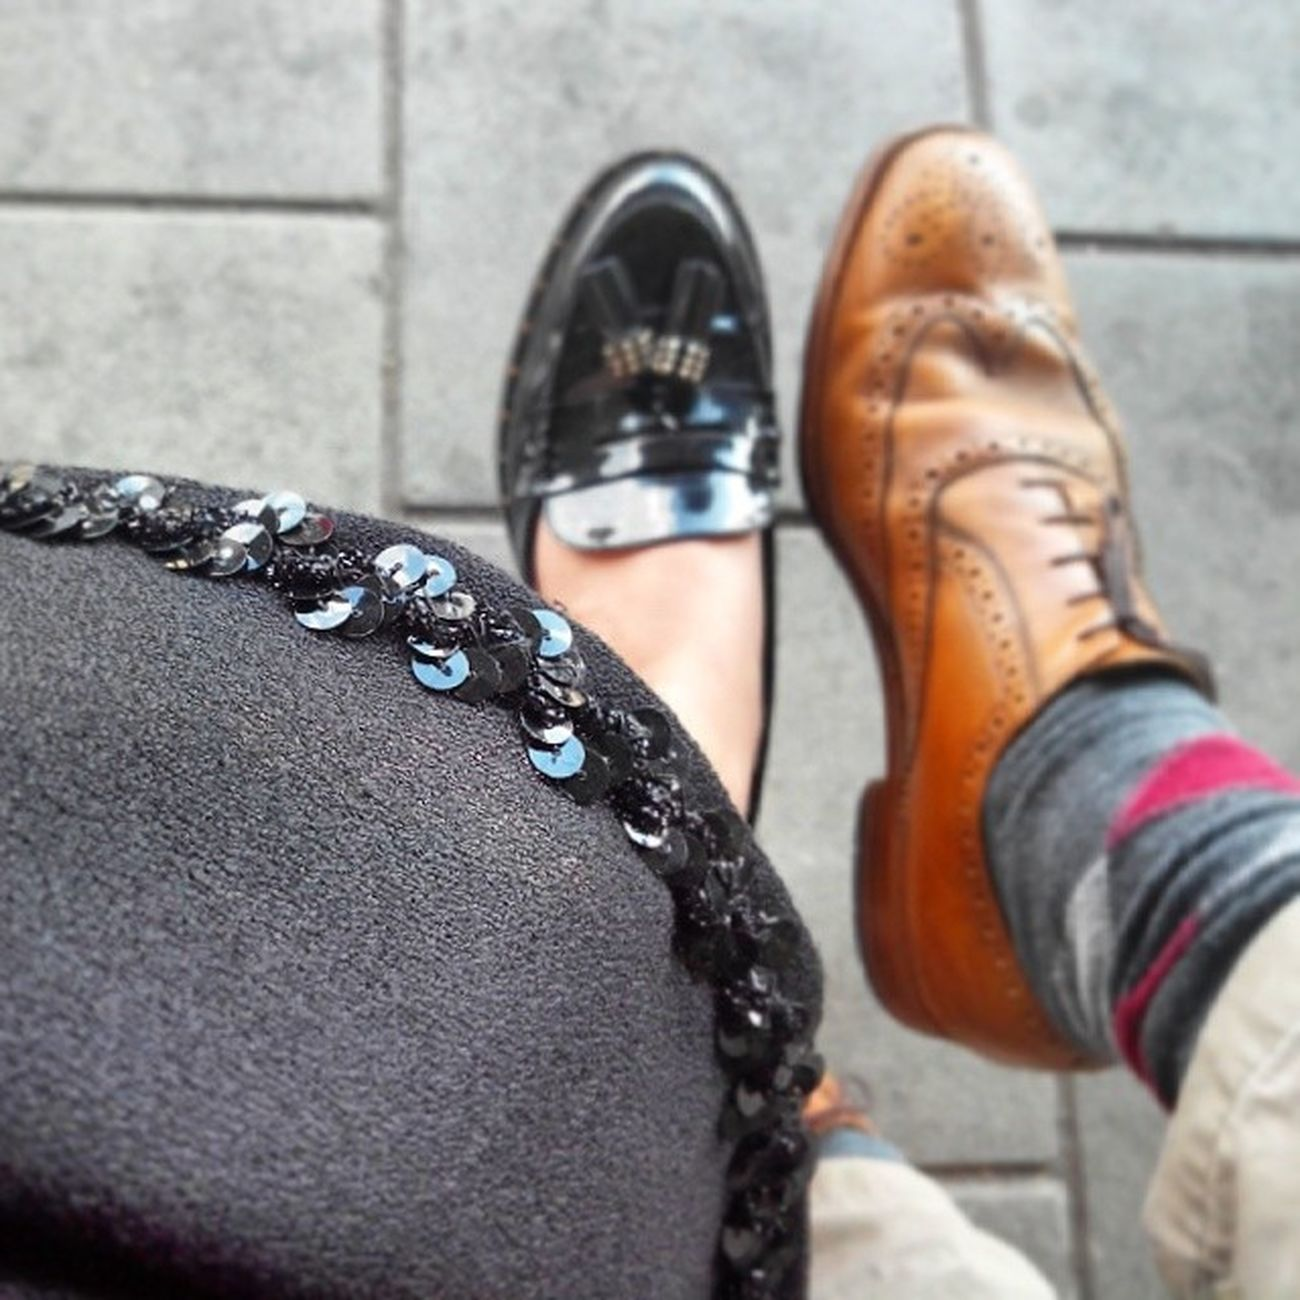 On our way to Leuven for happy lunching. Photography Fashion Stylecouple